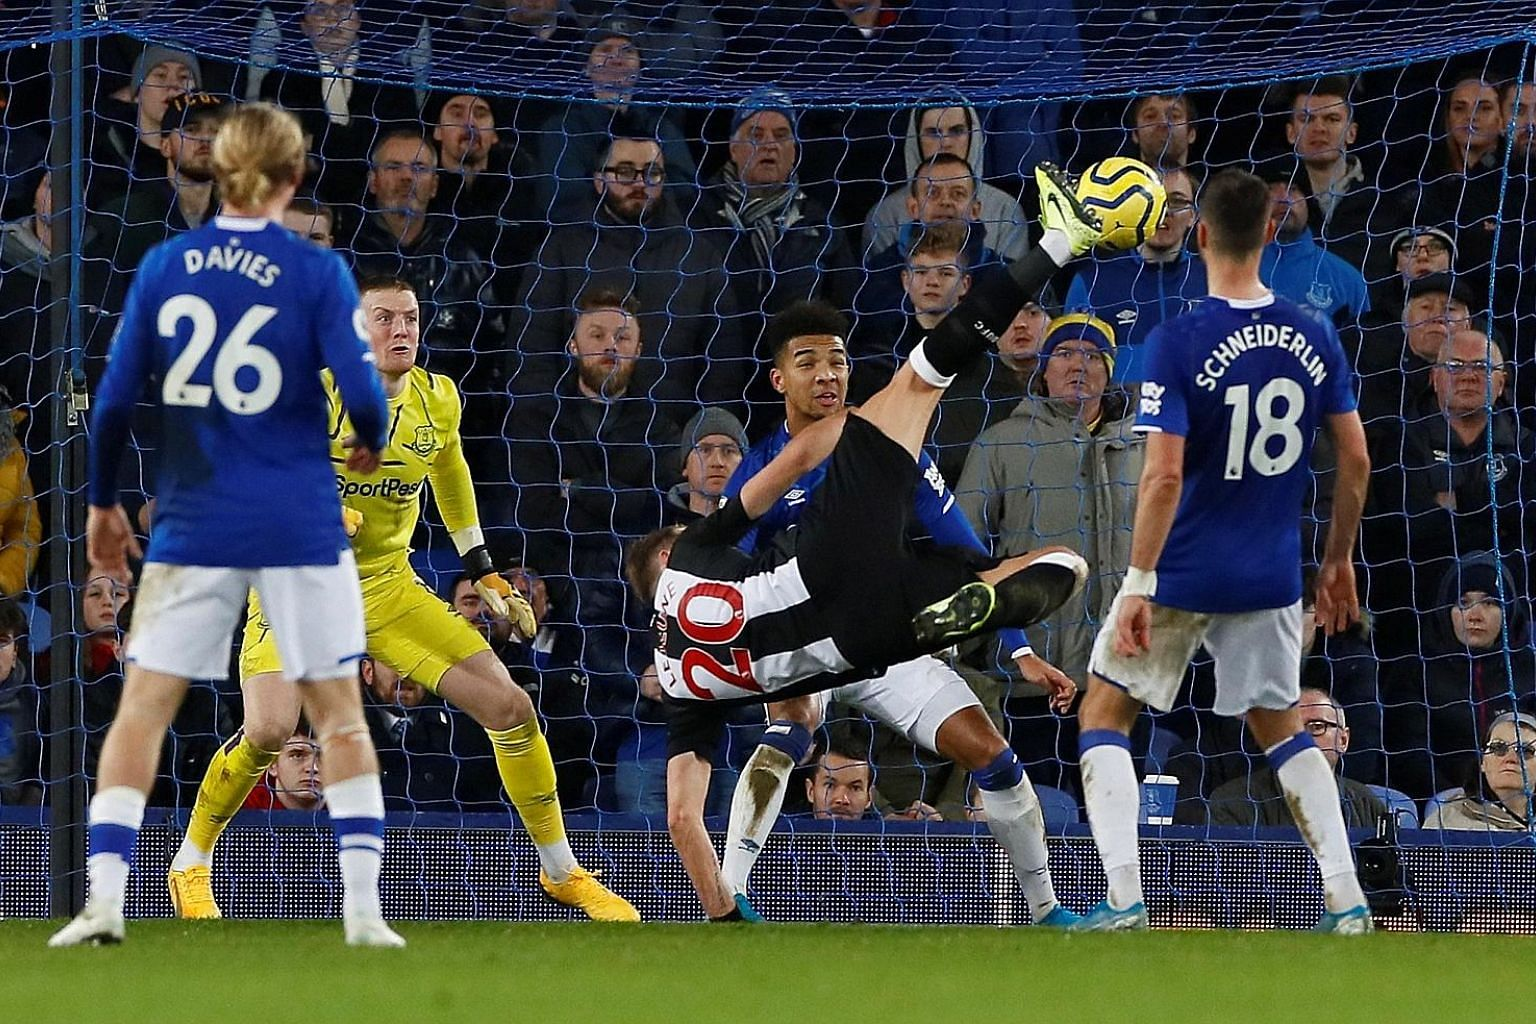 Newcastle centre-back Florian Lejeune scoring his first goal in three years. Just 102 seconds later, he netted against Everton again. PHOTO: REUTERS